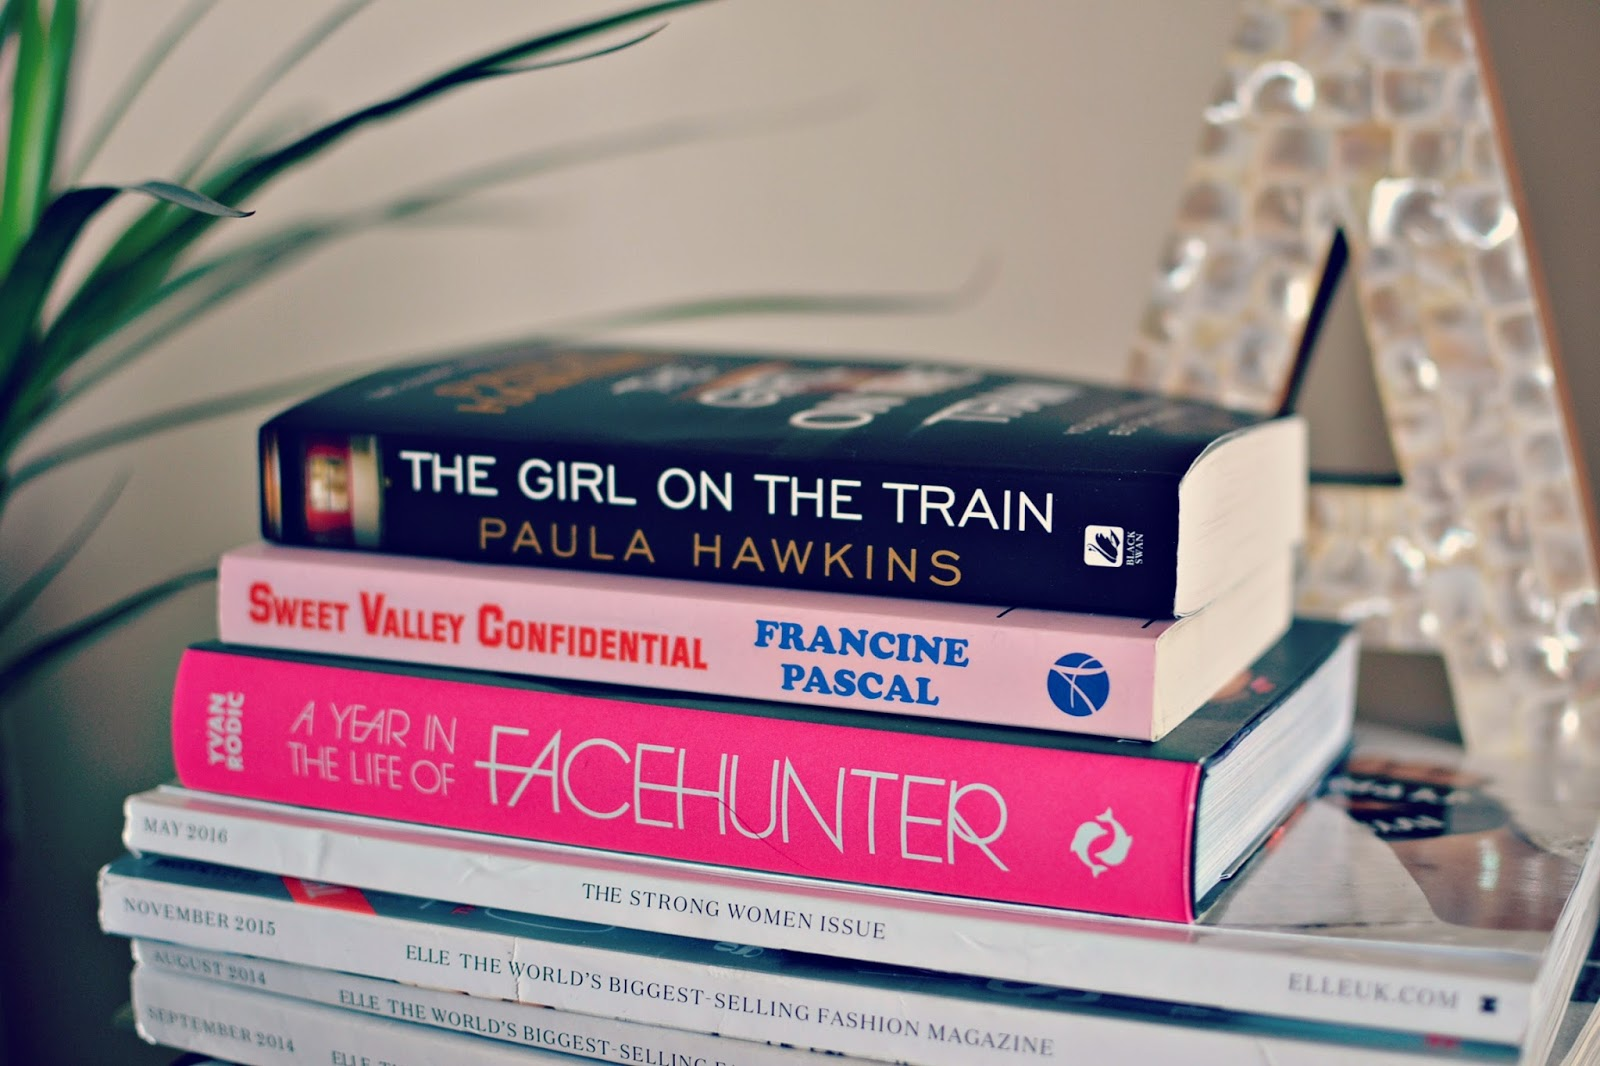 Girl on the Train, A year in the life of Facehunter, Sweet Valley Confidential book